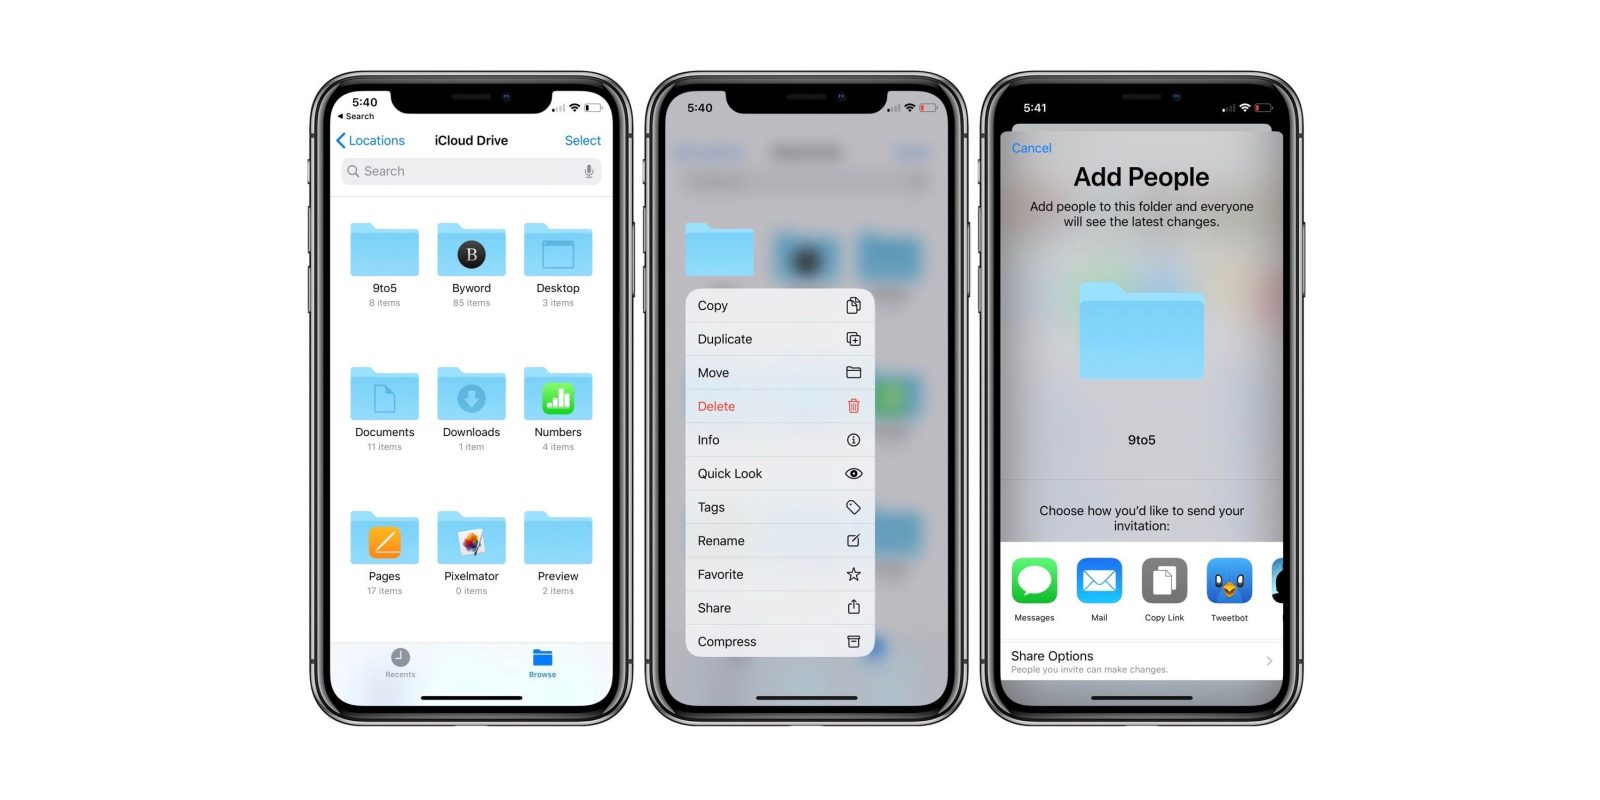 iOS 13: How to share iCloud Drive folders from iPhone and iPad